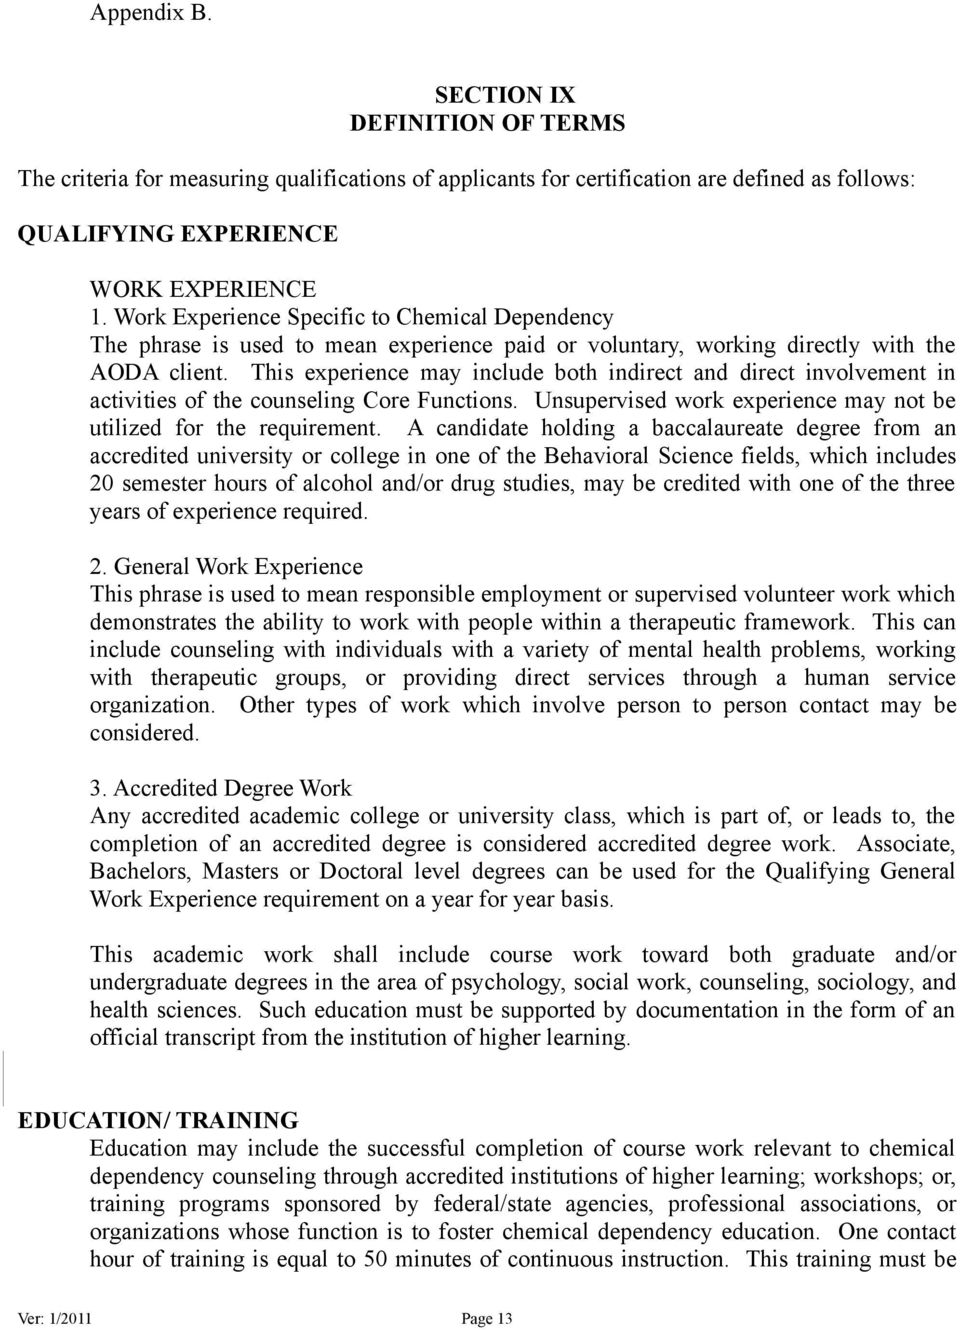 This experience may include both indirect and direct involvement in activities of the counseling Core Functions. Unsupervised work experience may not be utilized for the requirement.